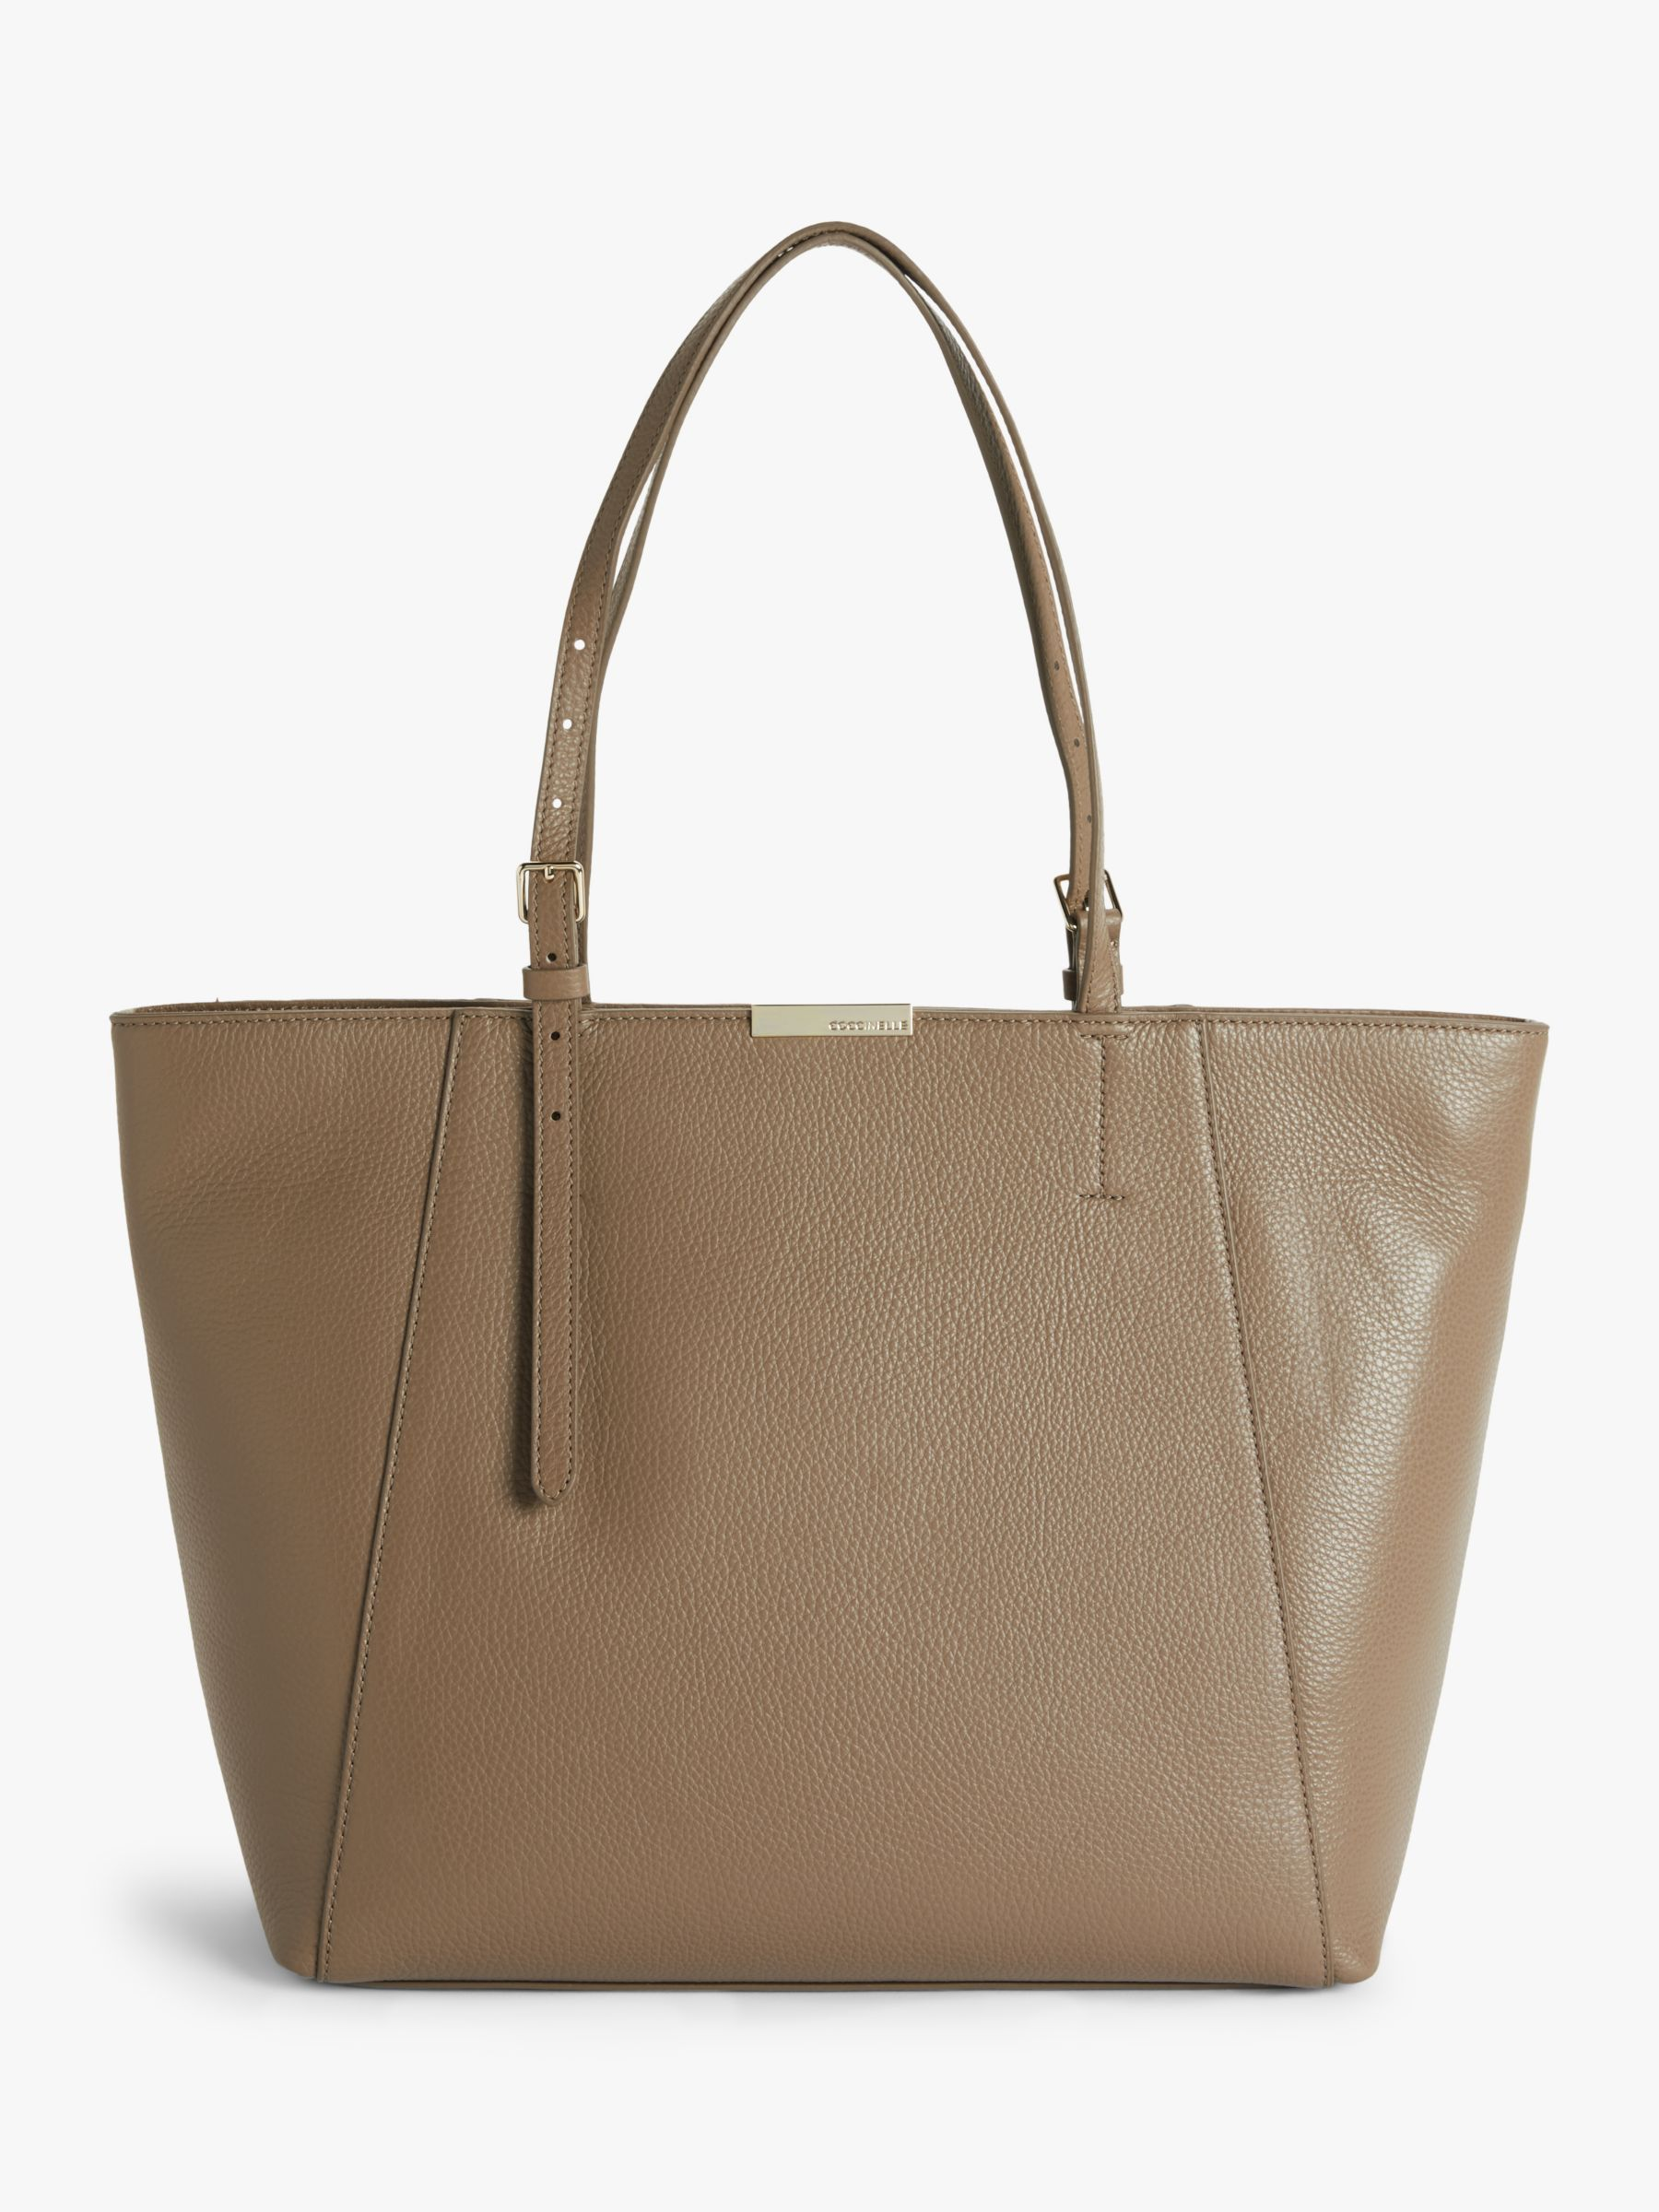 Coccinelle Coccinelle Cher Leather Tote Bag